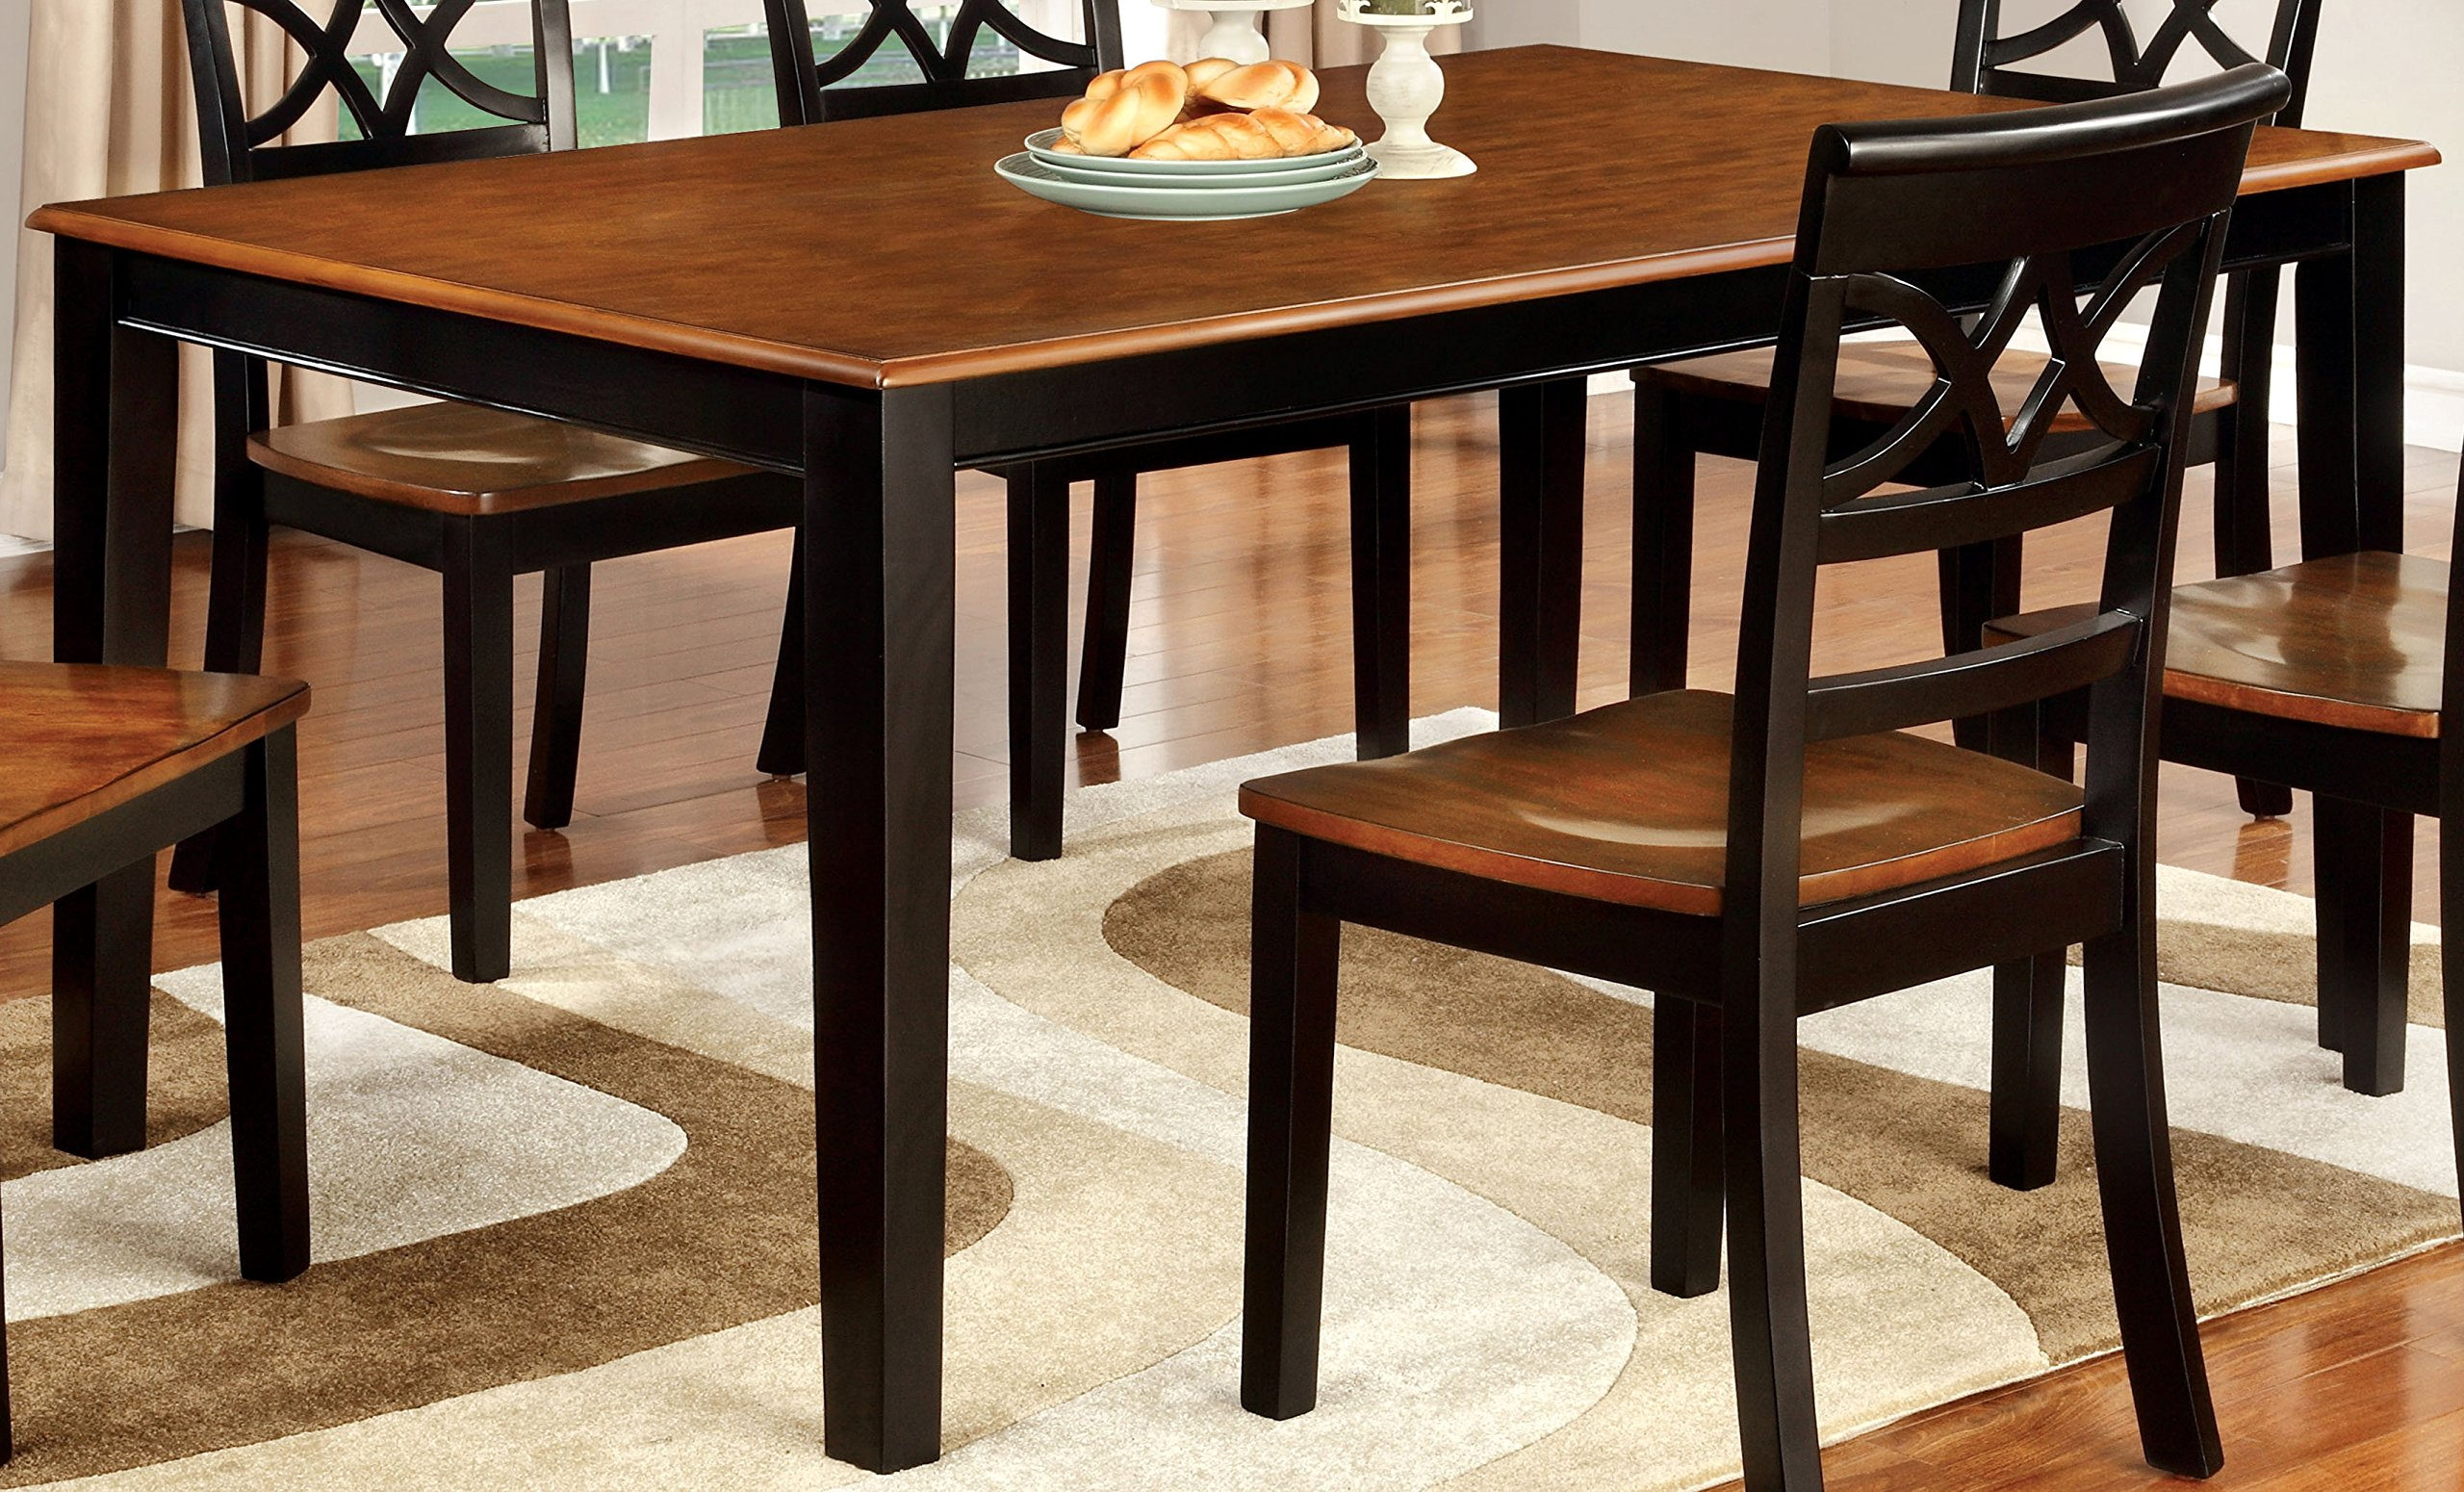 Furniture of America Cherrine Country Style Dining Table, Oak/Black